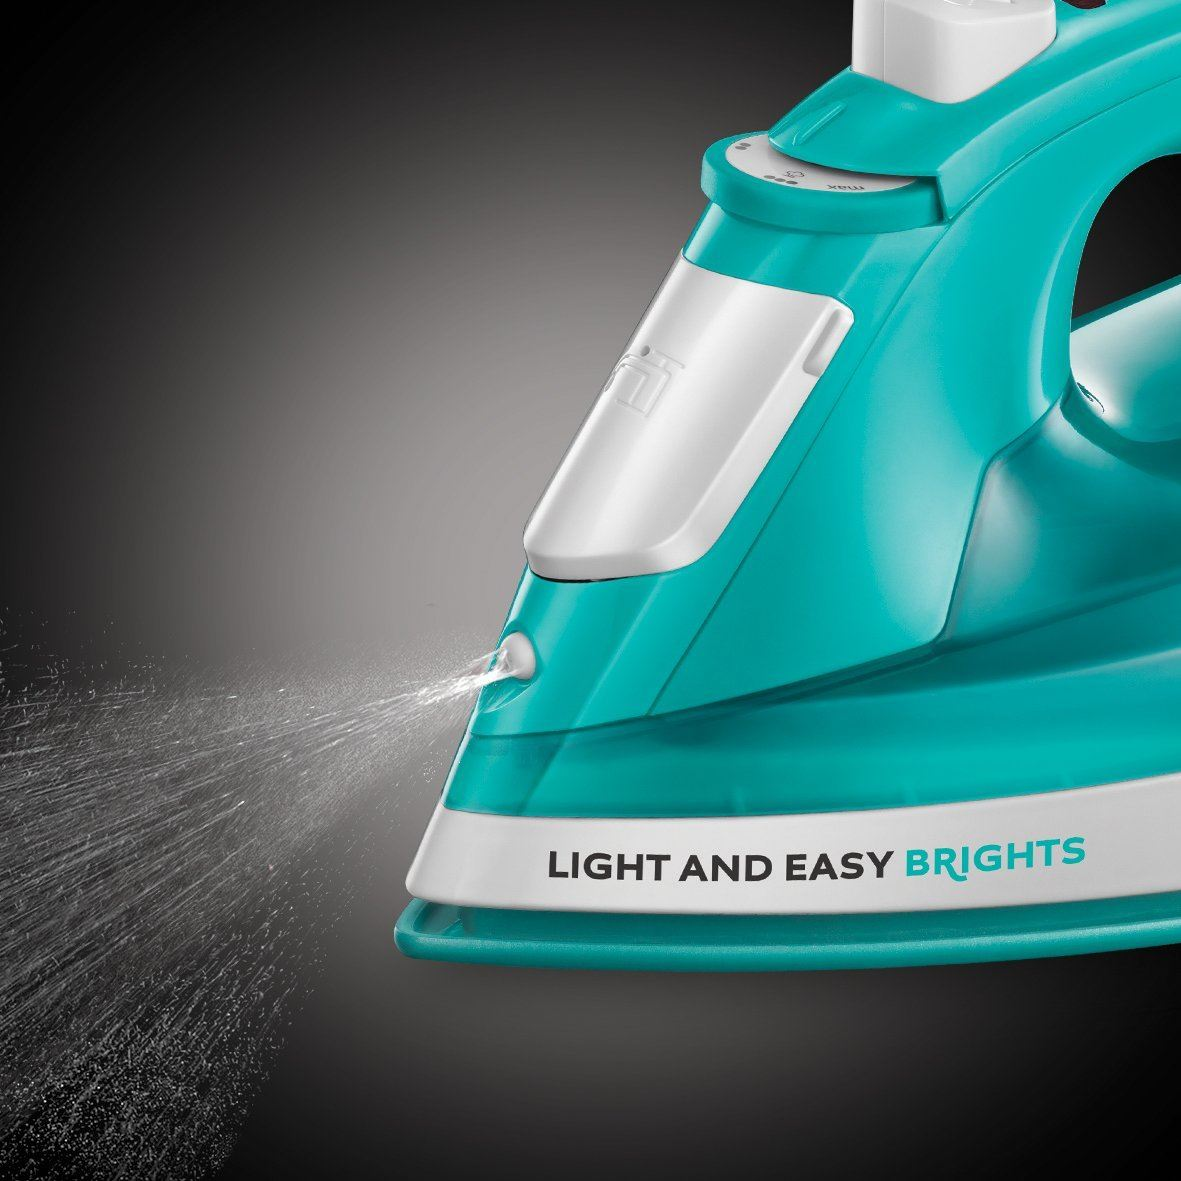 Russell-Hobbs-24840-Light-amp-Easy-Brights-Steam-Iron-with-Ceramic-Soleplate-2400W thumbnail 8